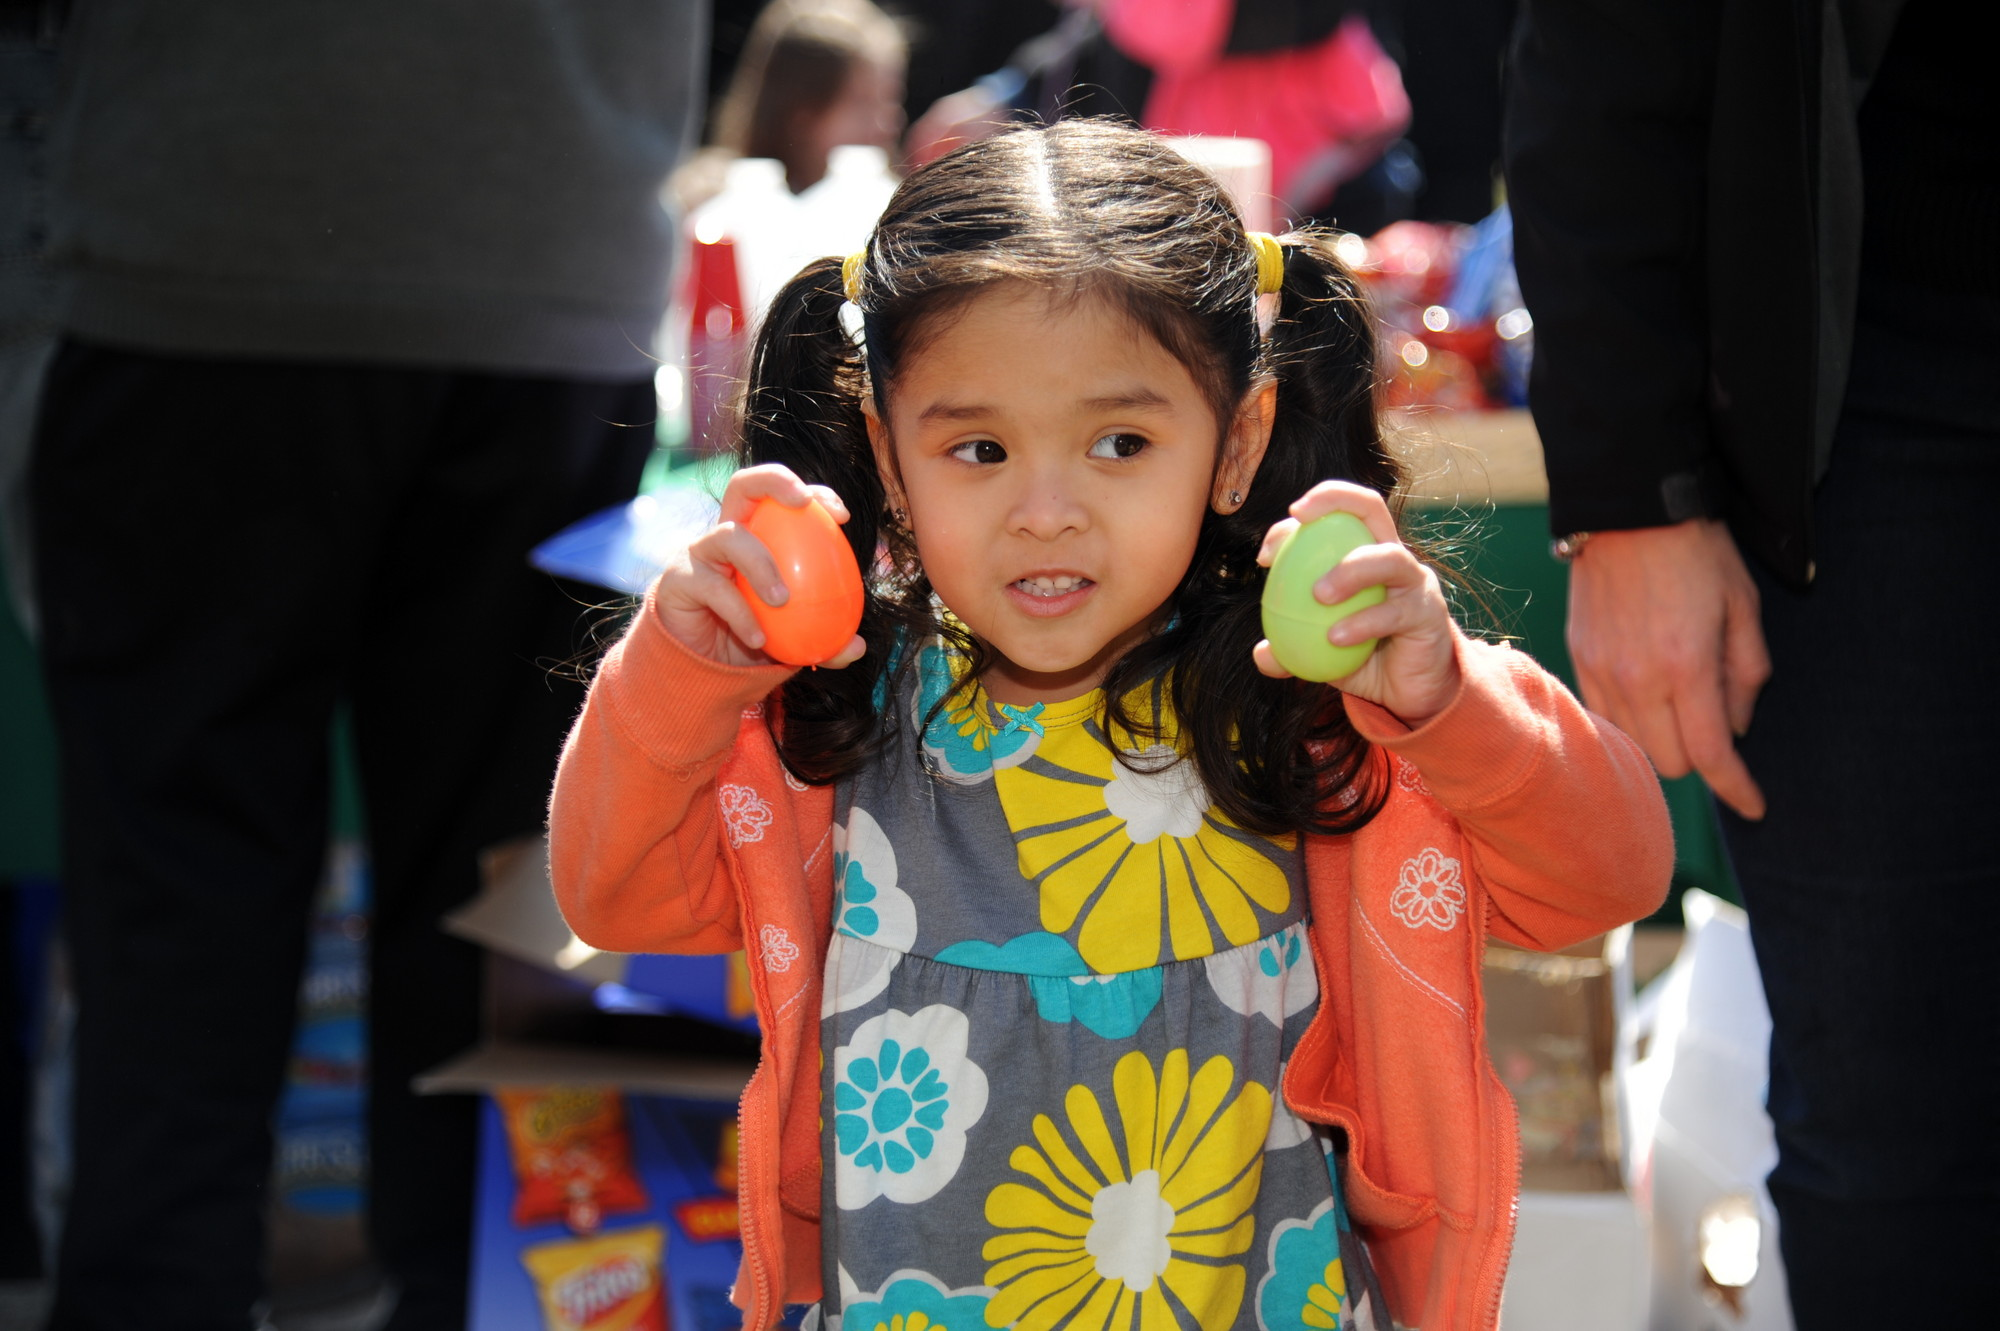 Siena Lopez, 3, holds two eggs she found at St. Joseph's Easter egg hunt in Hewlett on March 30.